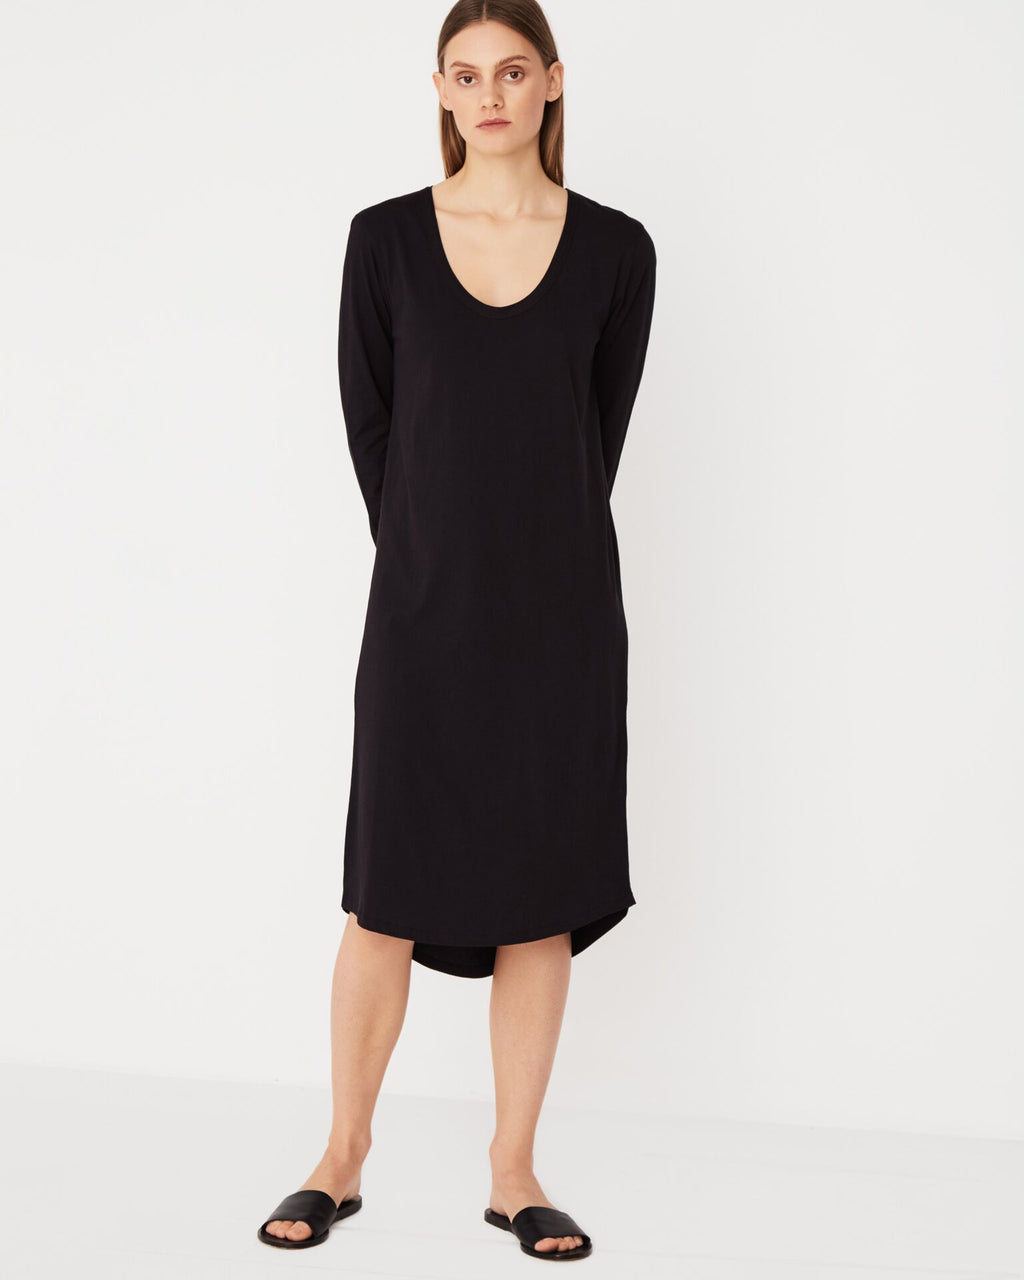 Assembly Label Soft V Long Sleeve Dress - Black